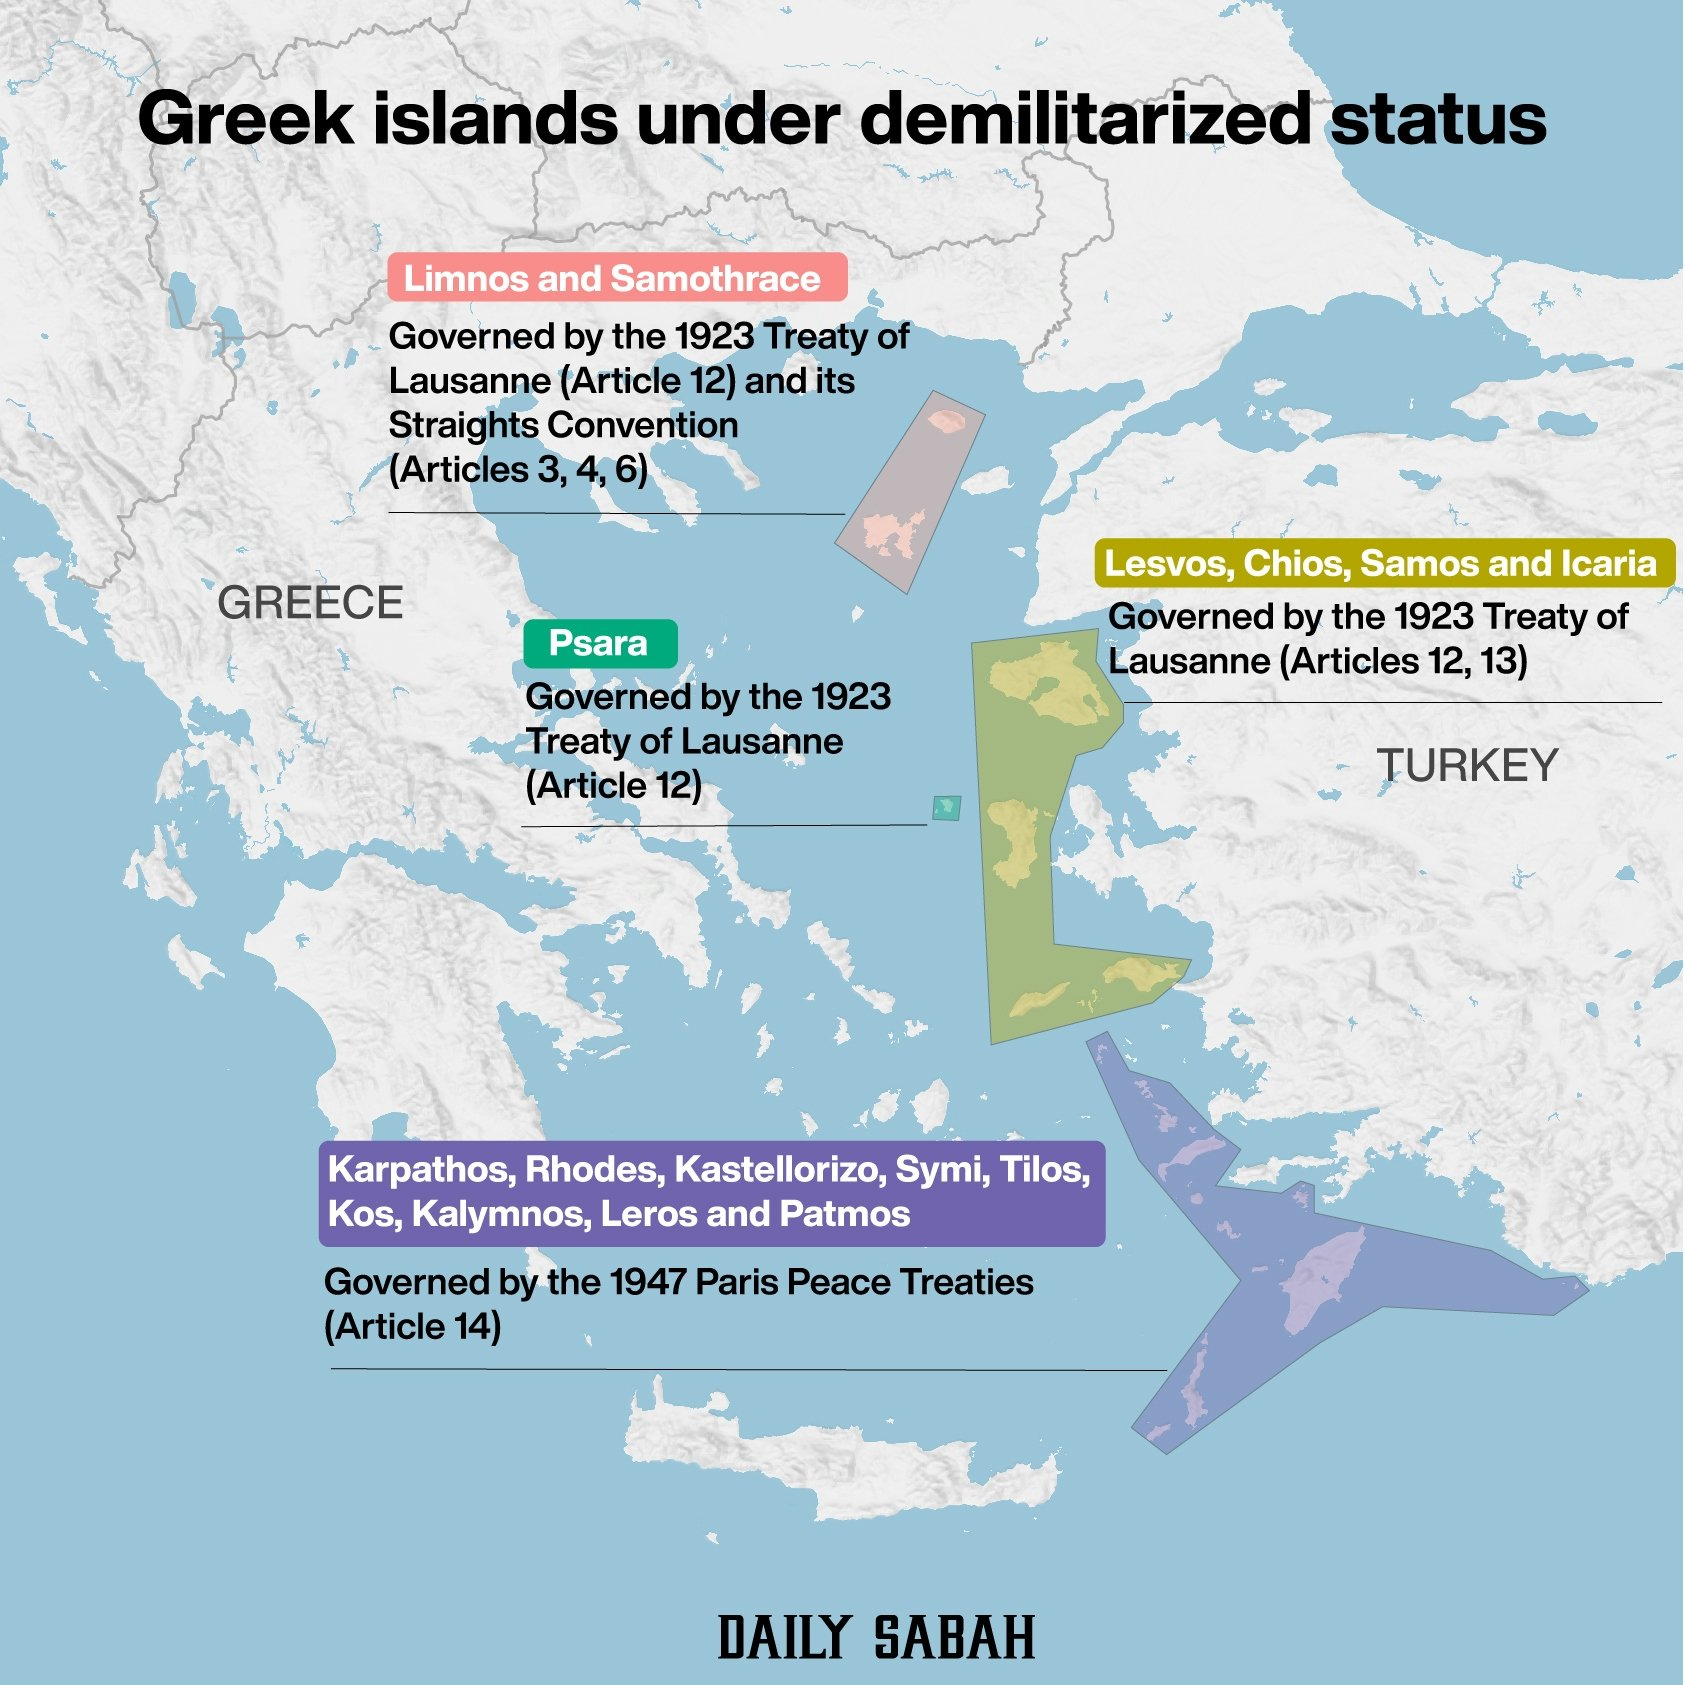 This map shows Greek islands under demilitarized status in the Aegean Sea between Turkey and Greece. (Infographic by Daily Sabah)